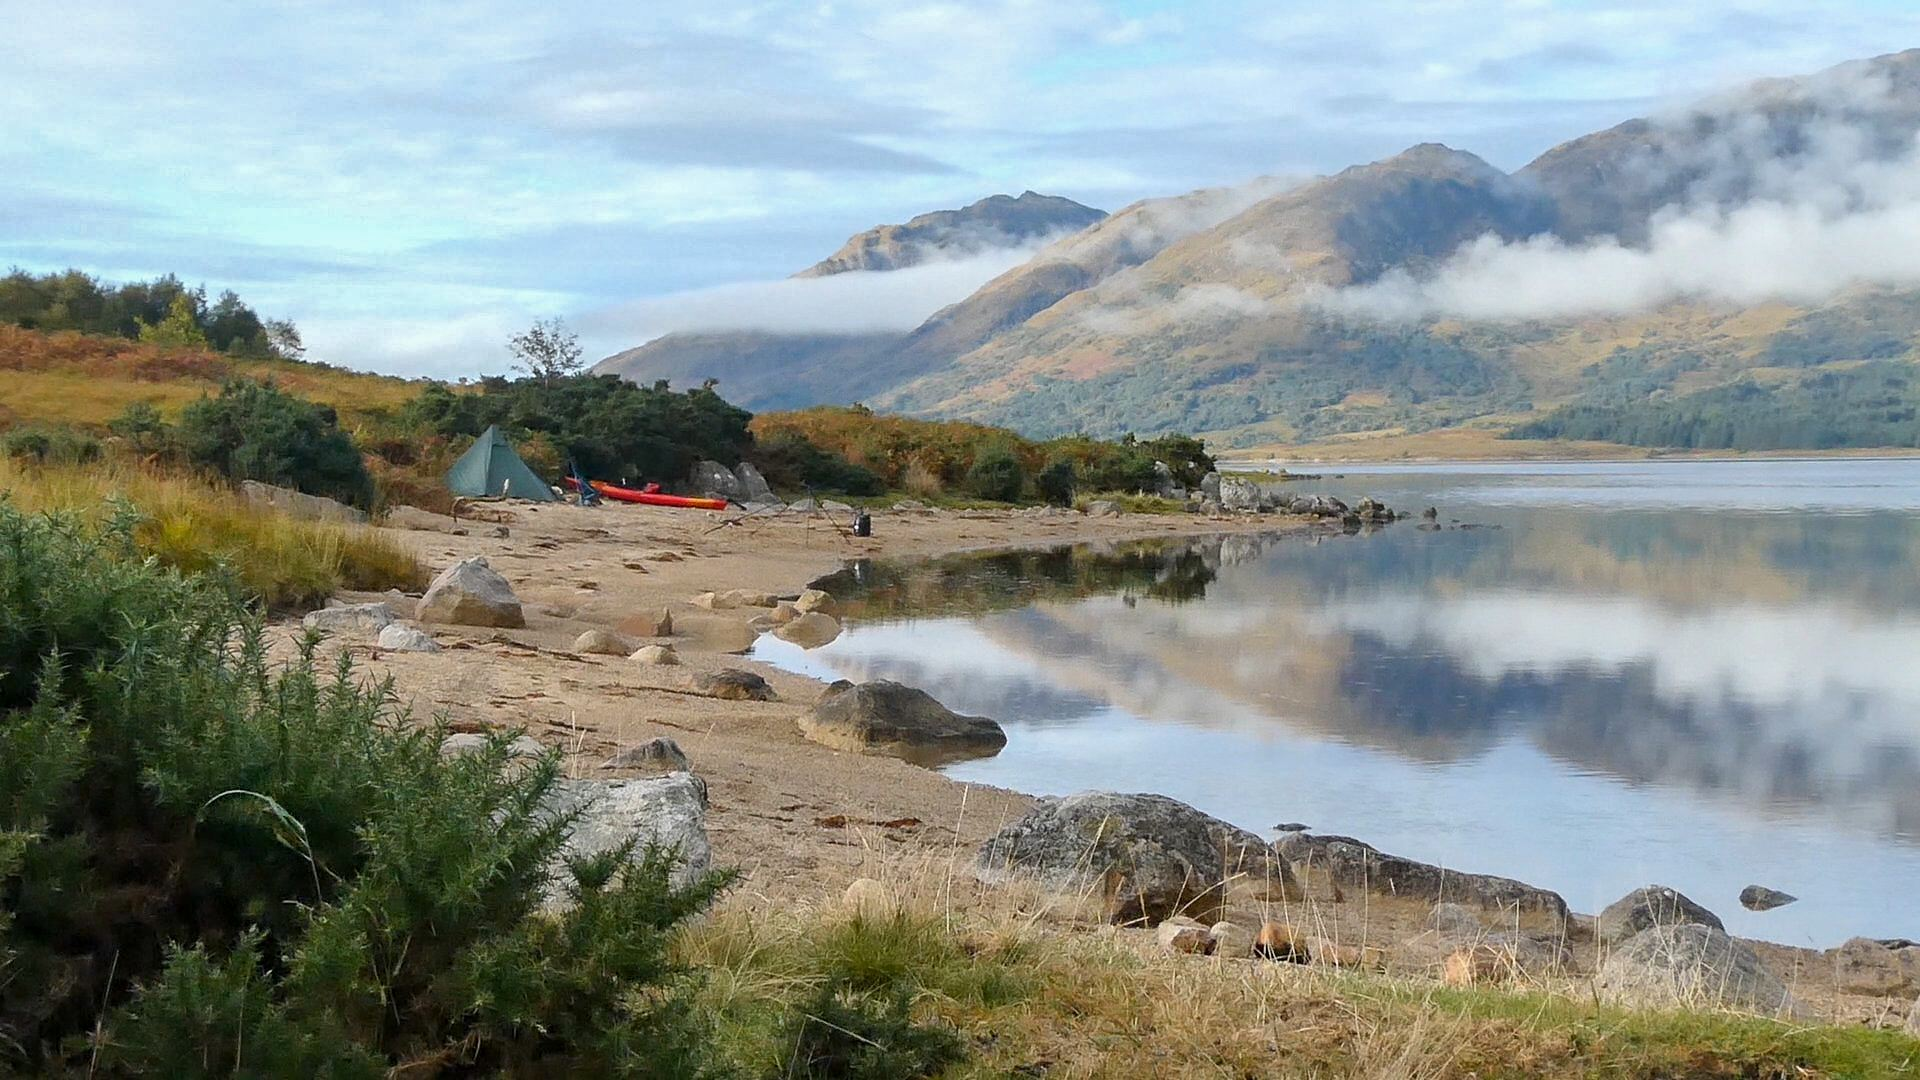 Kayak camping on a remote beach on Loch Etive